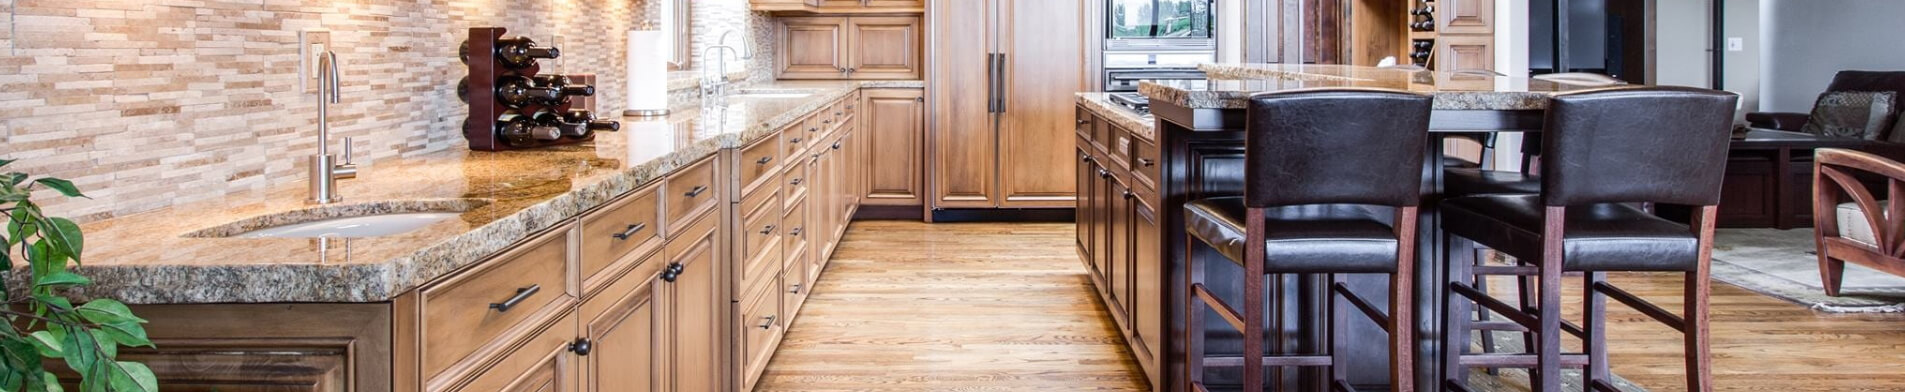 process of getting new countertops